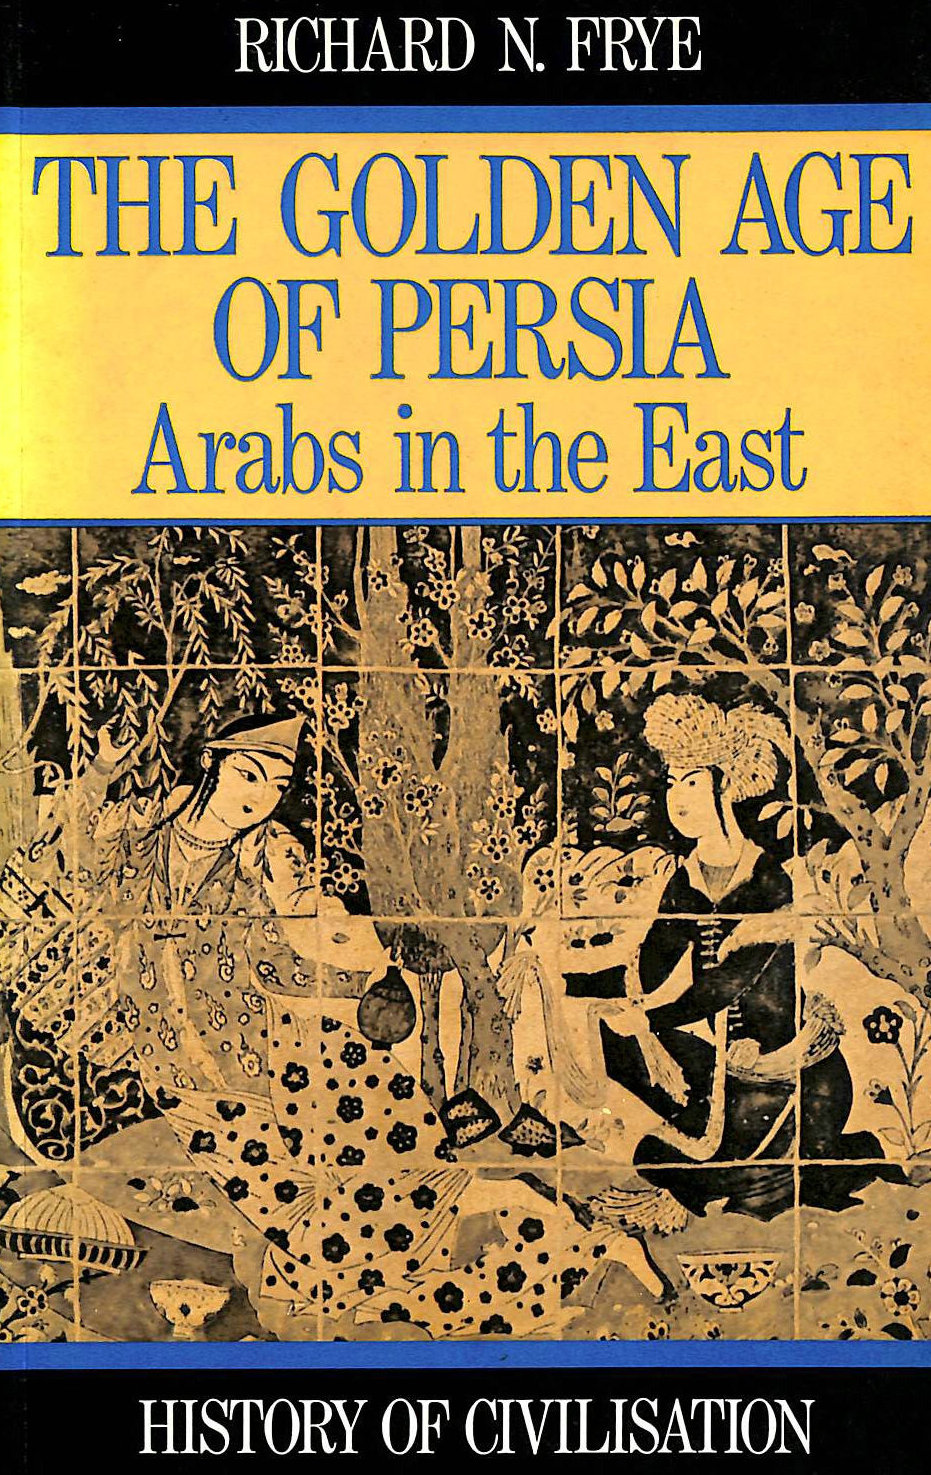 Image for Golden Age of Persia: The Arabs in the East (History of Civilization)